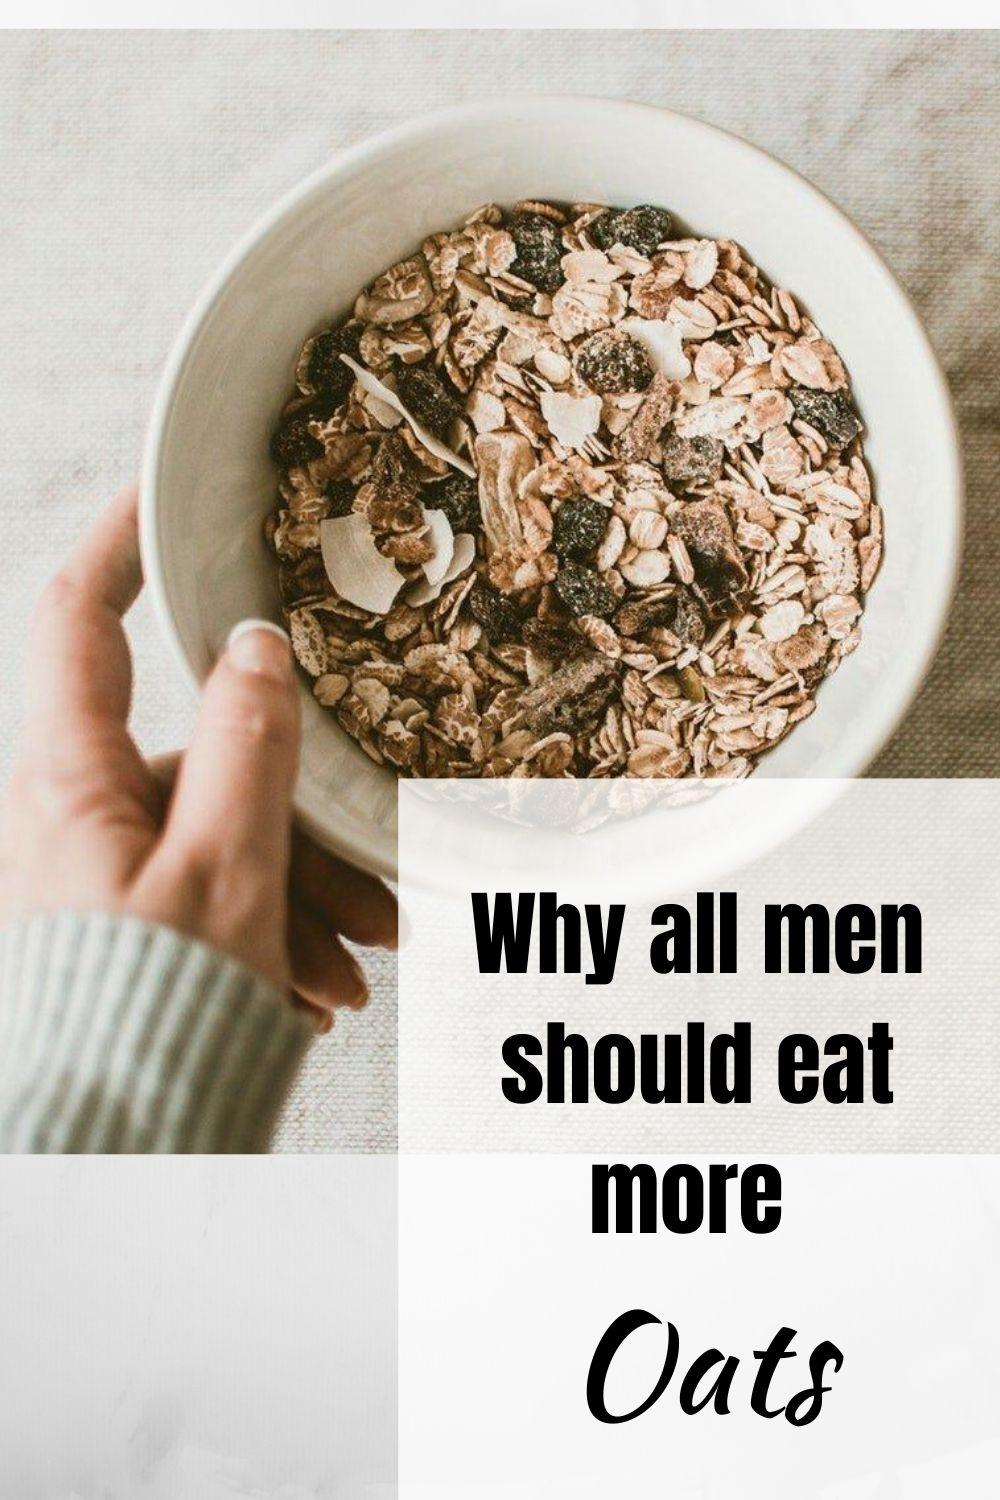 Why all men should eat more oats